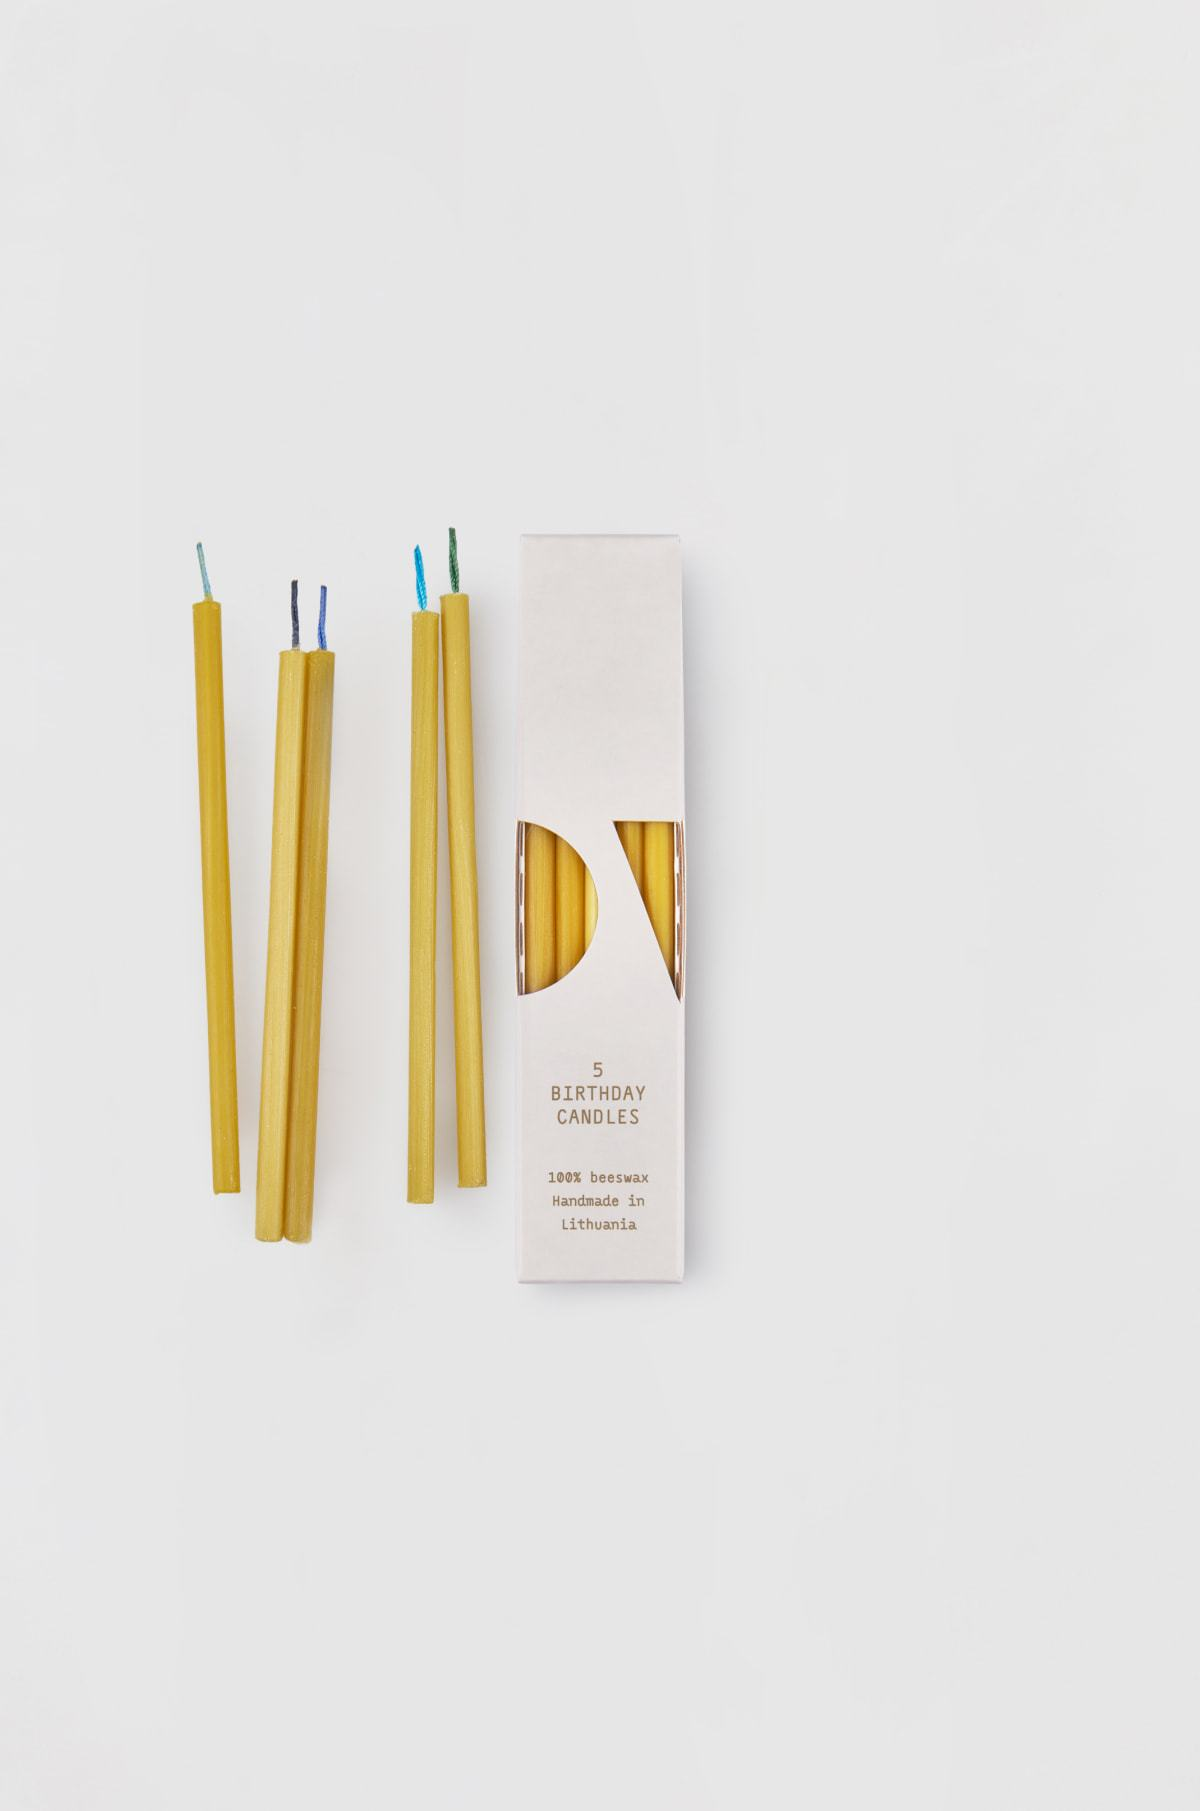 Pure beeswax birthday candles  x 5 - Blue toned cotton wicks